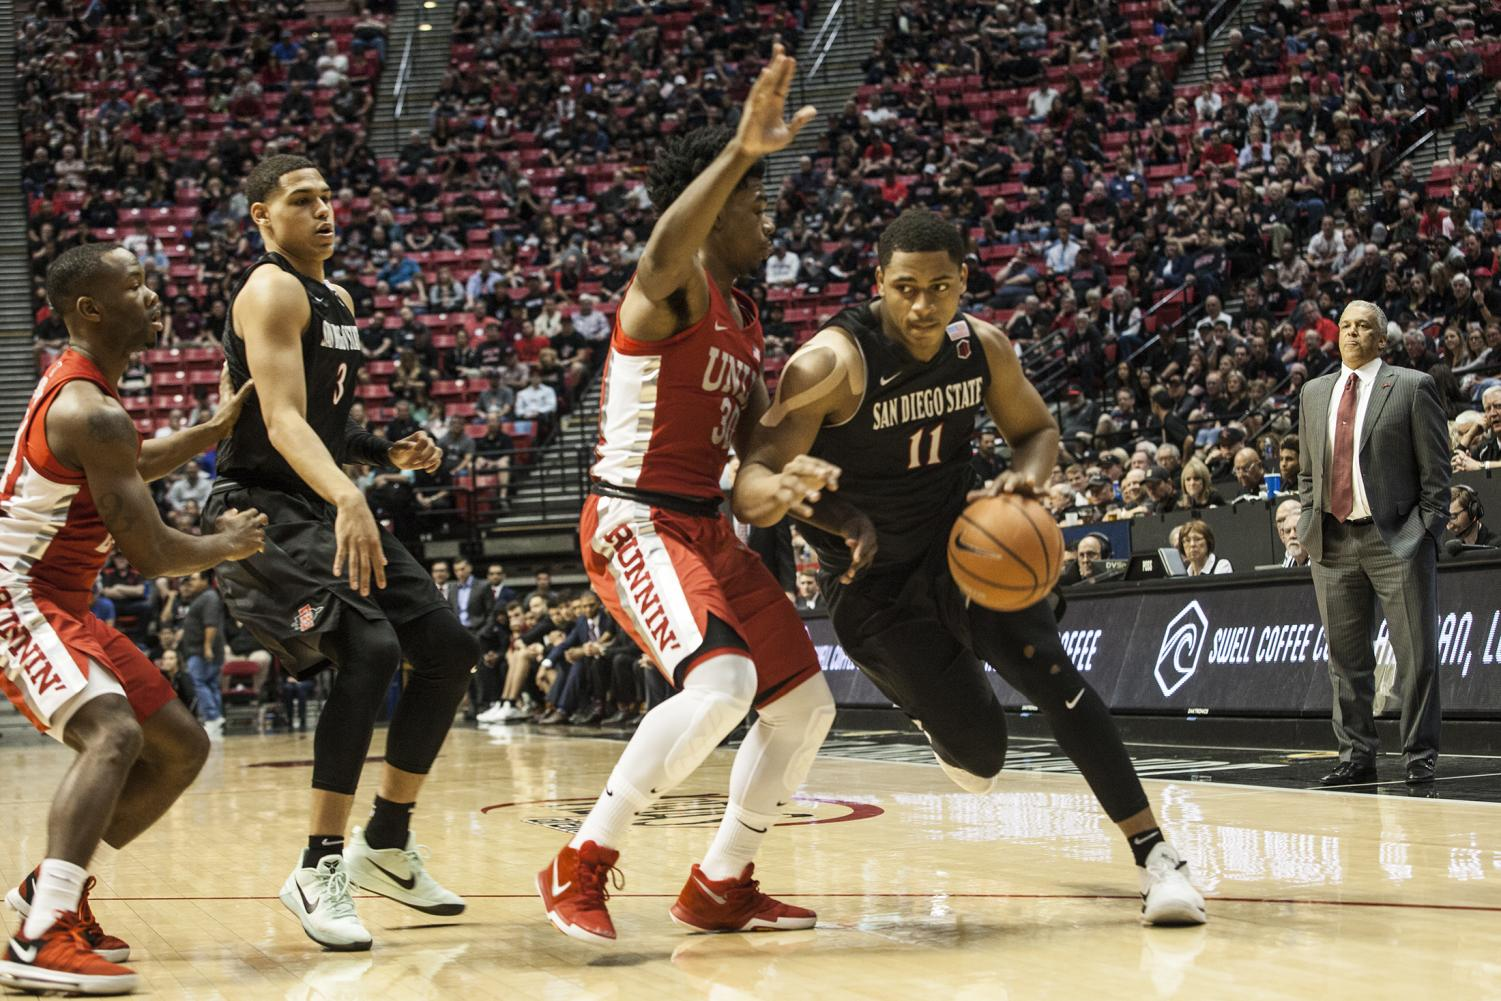 Matt Mitchell drives around UNLV's Jovan Mooring during the Aztecs 94-56 victory on Feb. 17 at Viejas Arena.